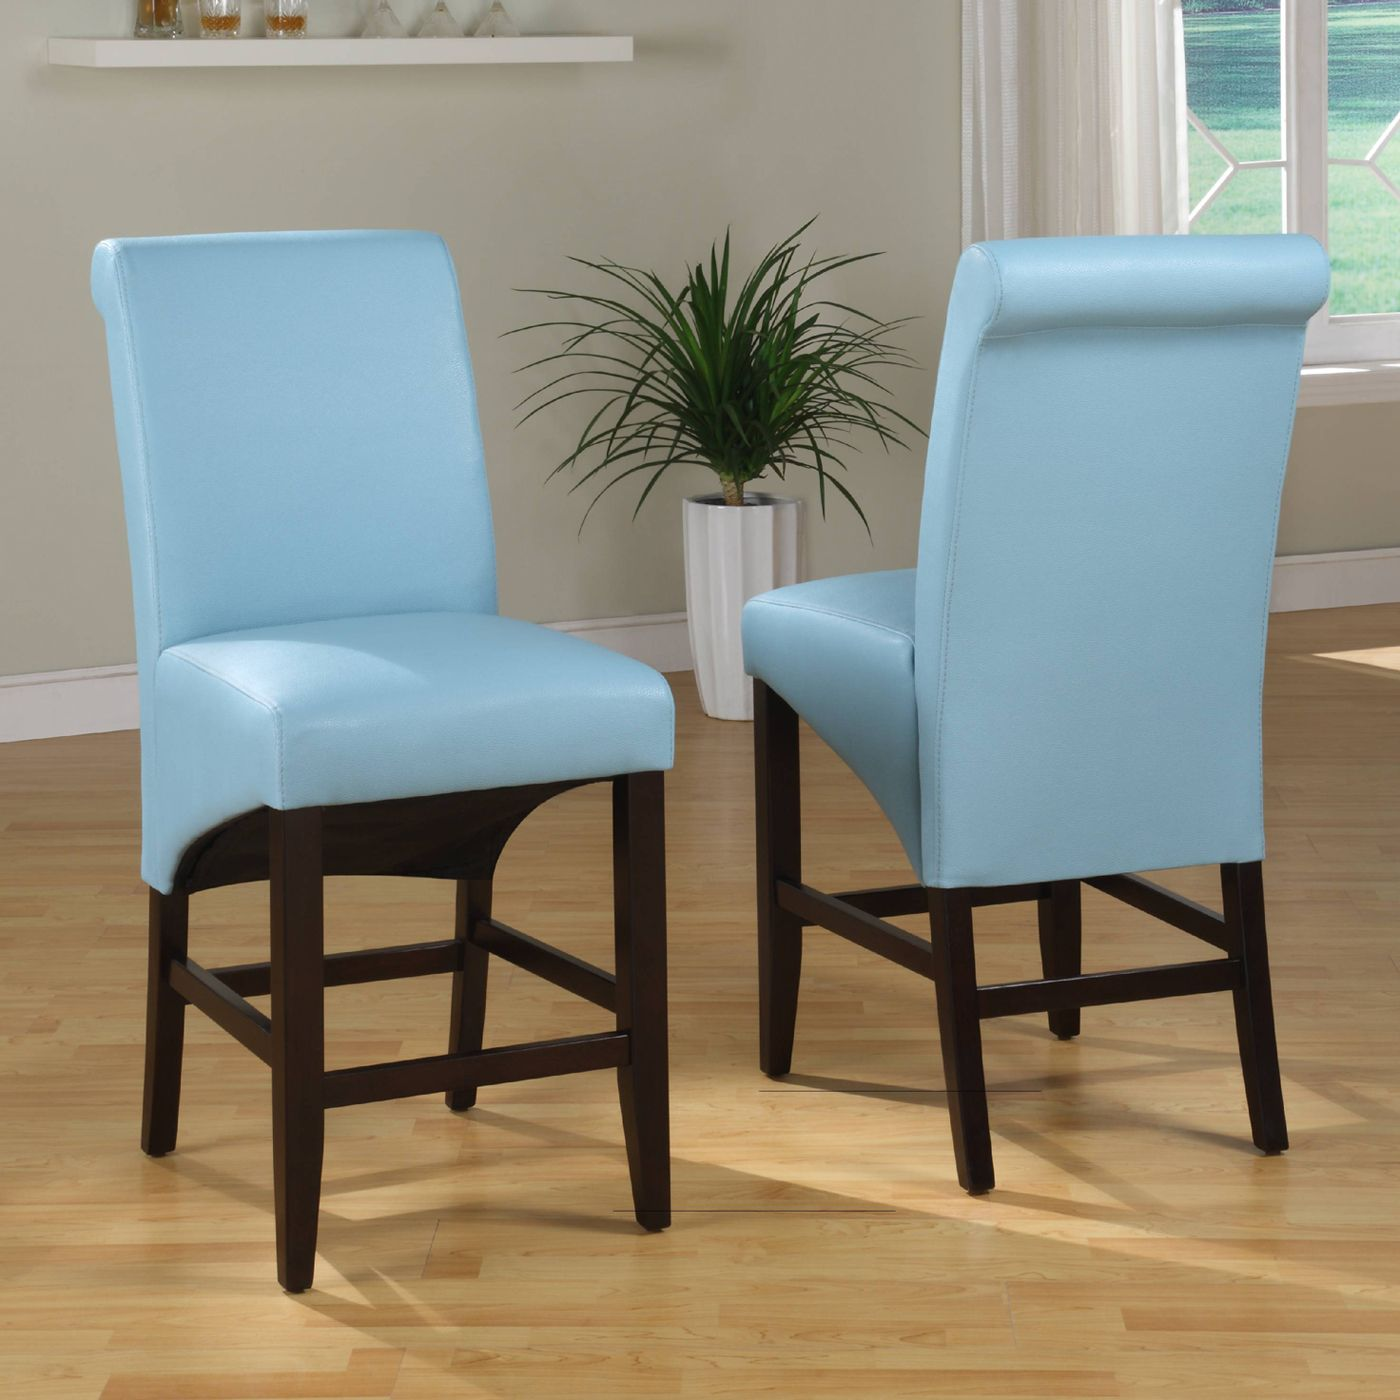 Modus Furniture Cosmo Sleigh Back Stool (Set of 2) | ATG Stores